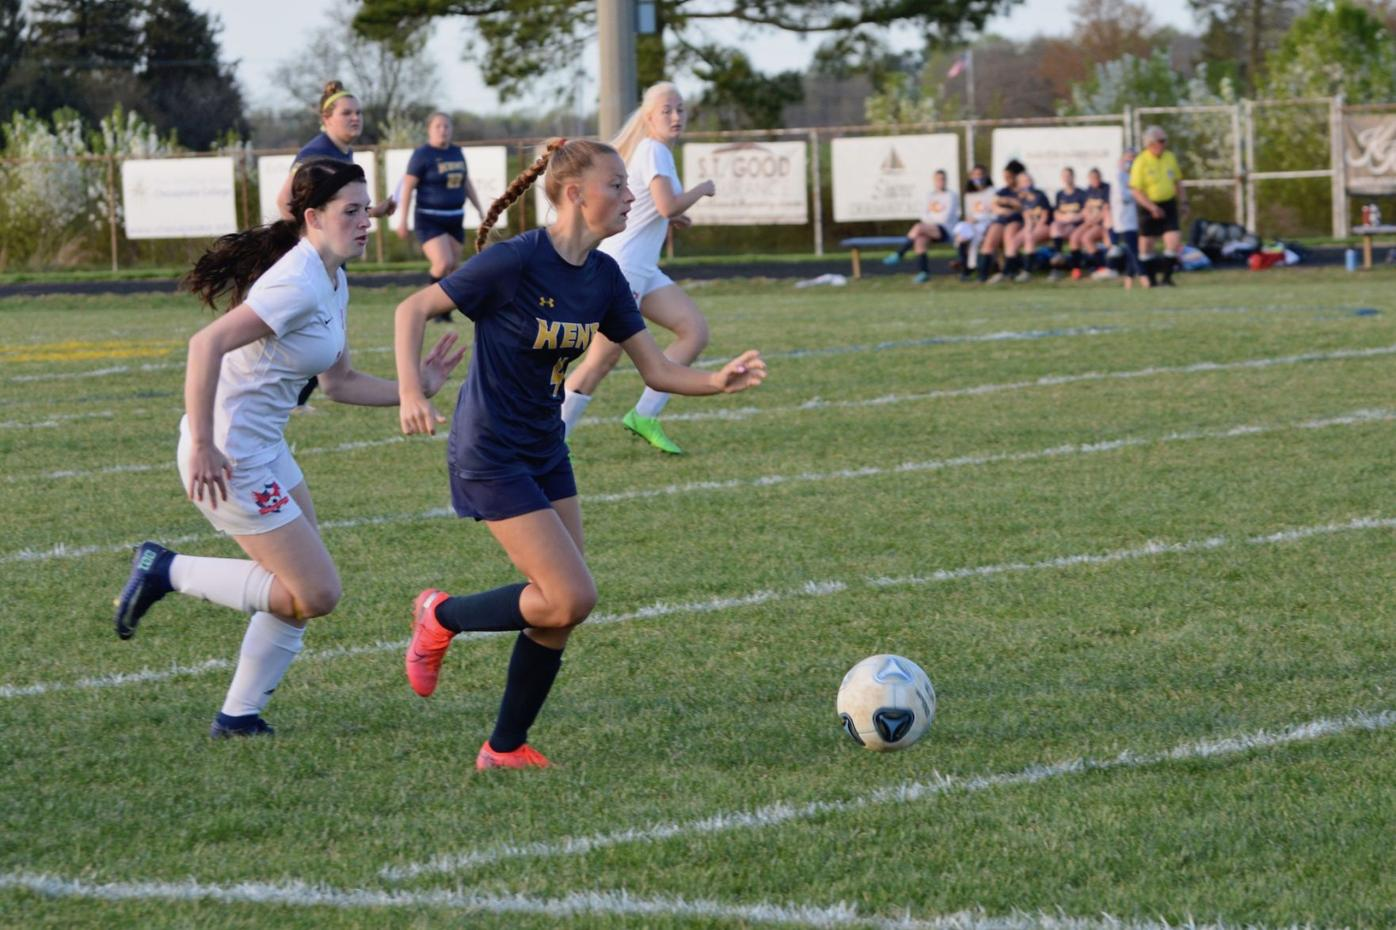 Kent boots North Dorchester in seniors' final soccer match at home